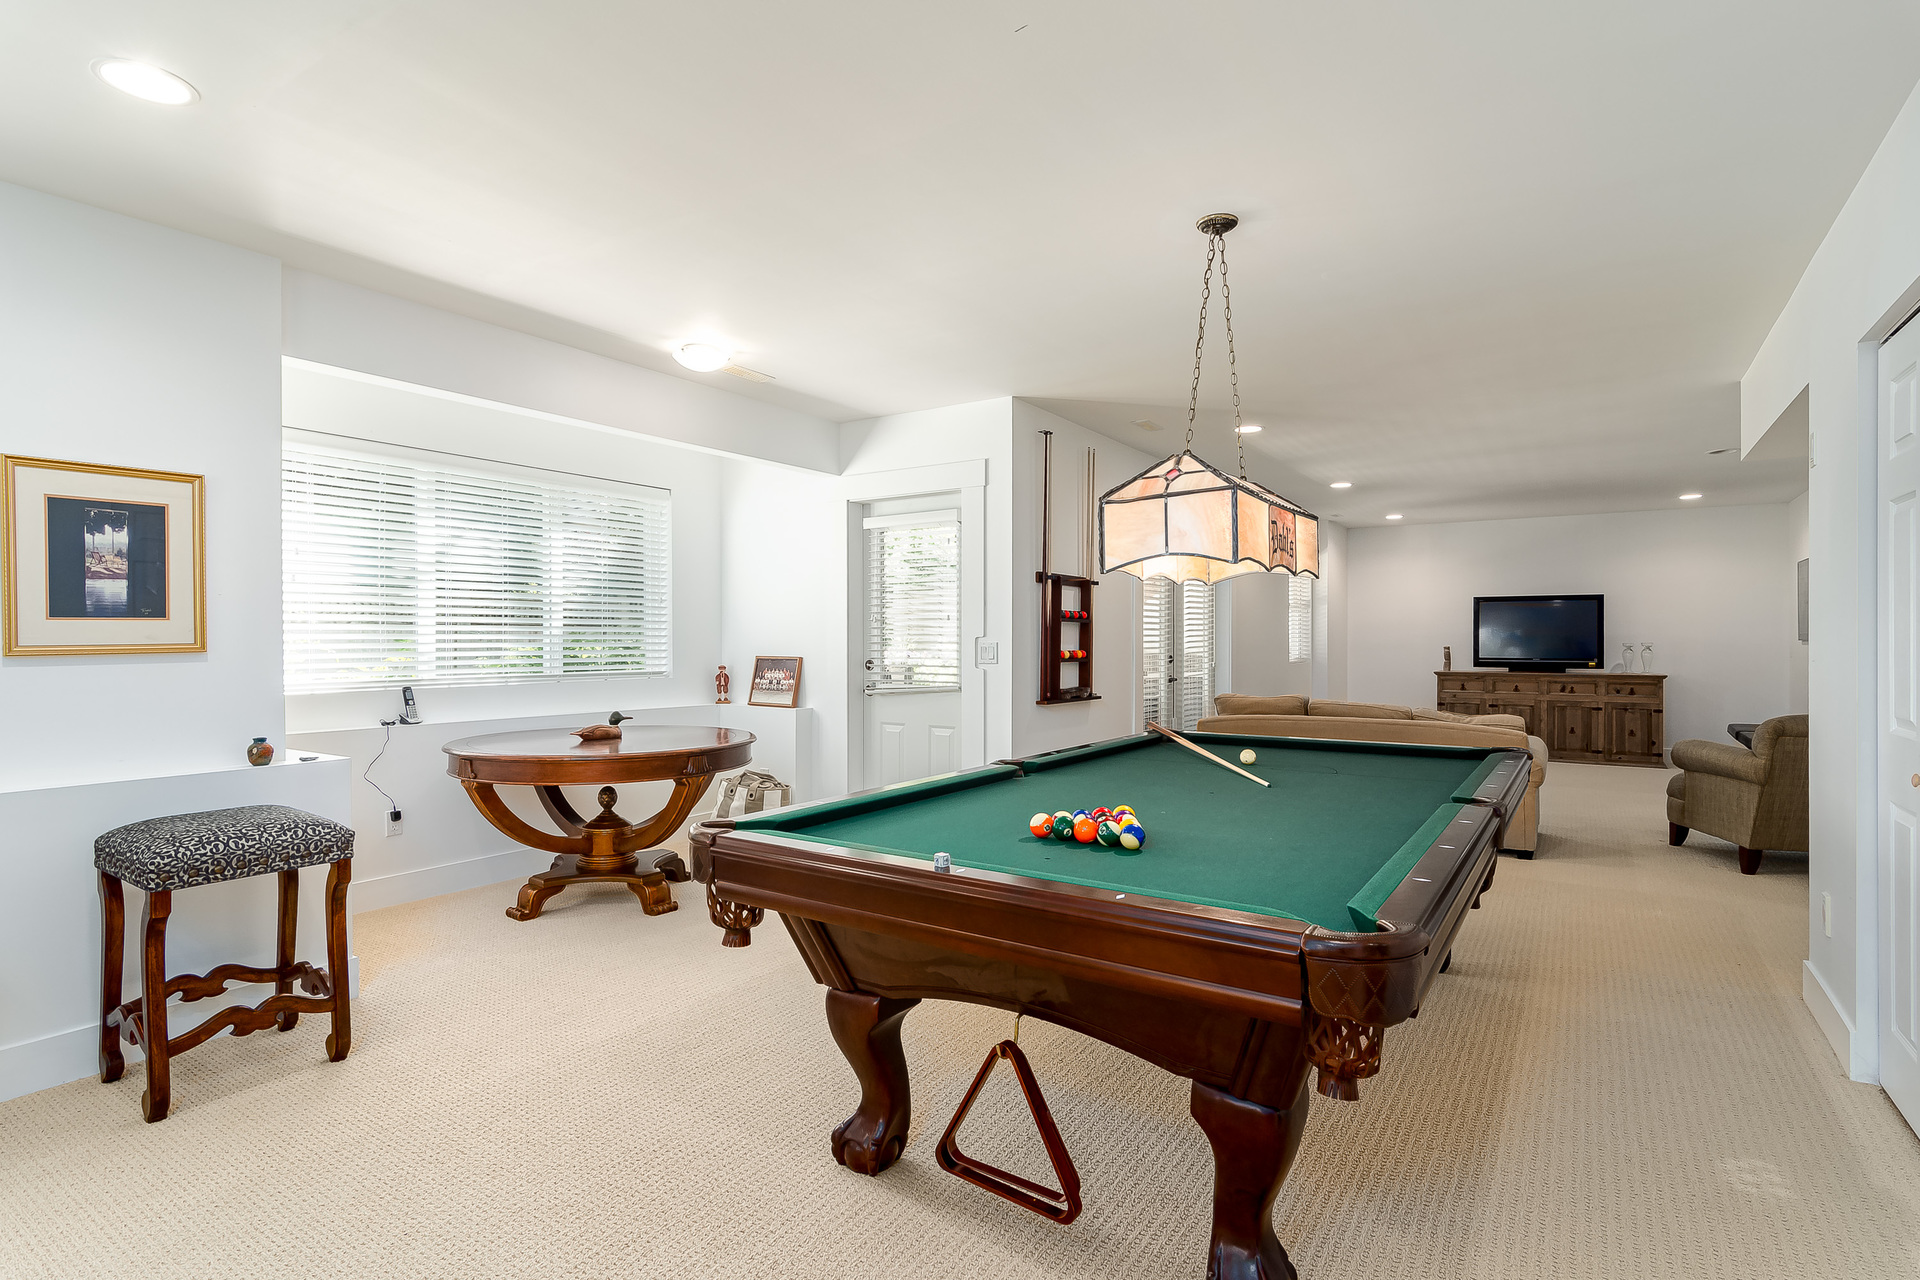 Downstairs Games Room & Recreation Room  at 13168 14a Avenue, Crescent Bch Ocean Pk., South Surrey White Rock